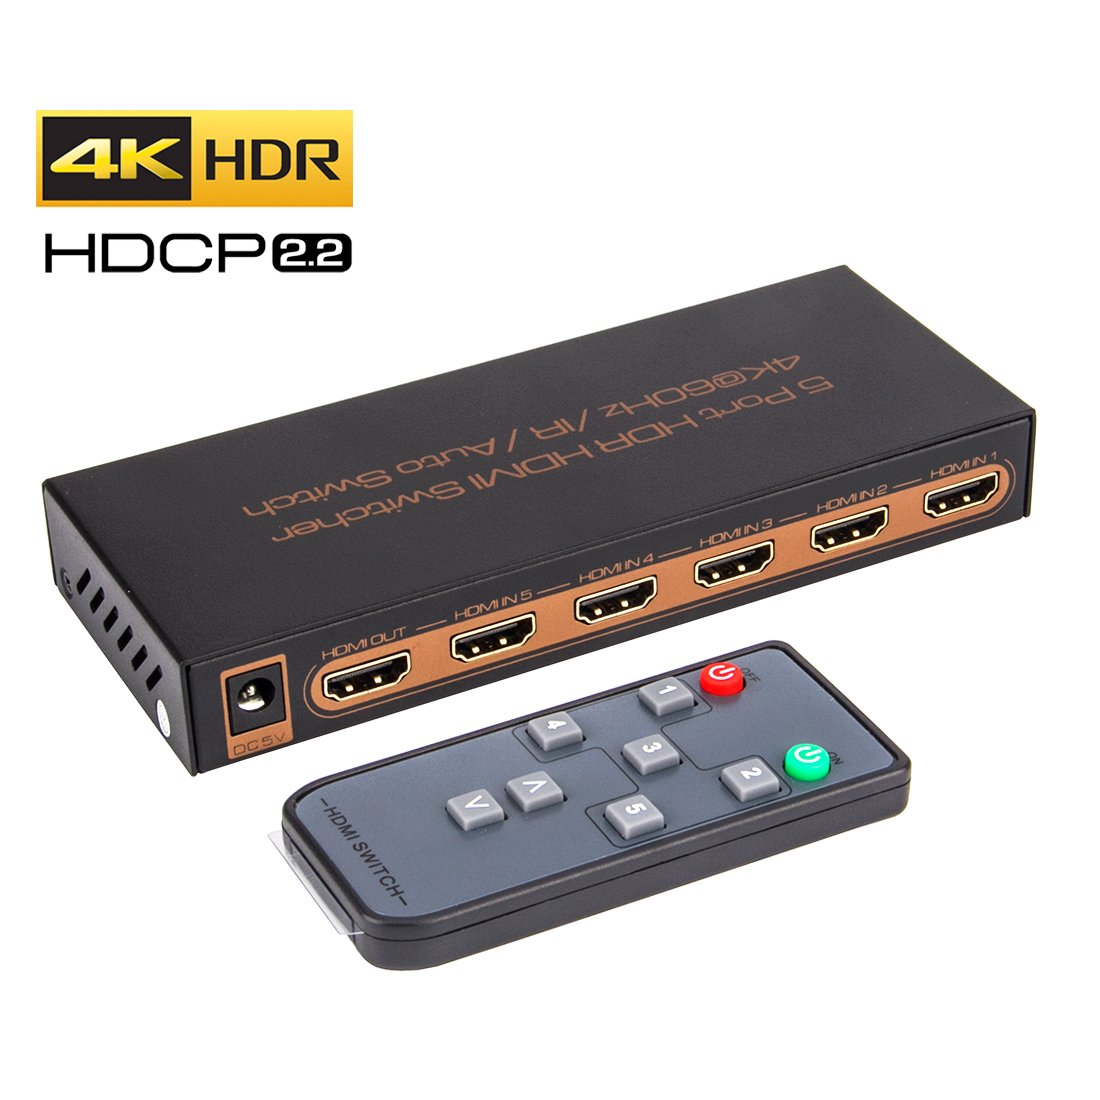 ROOFULL 5 in 1 Out HDMI 2.0 Switch 4K 60Hz HDR HDCP 2.2 Dolby Vision 1080P 3D, 5x1 5 Pors HDMI 2.0 Switcher with IR Remote, Compatible for PS4 Pro, Xbox One/360, Fire TV, Apple TV and More